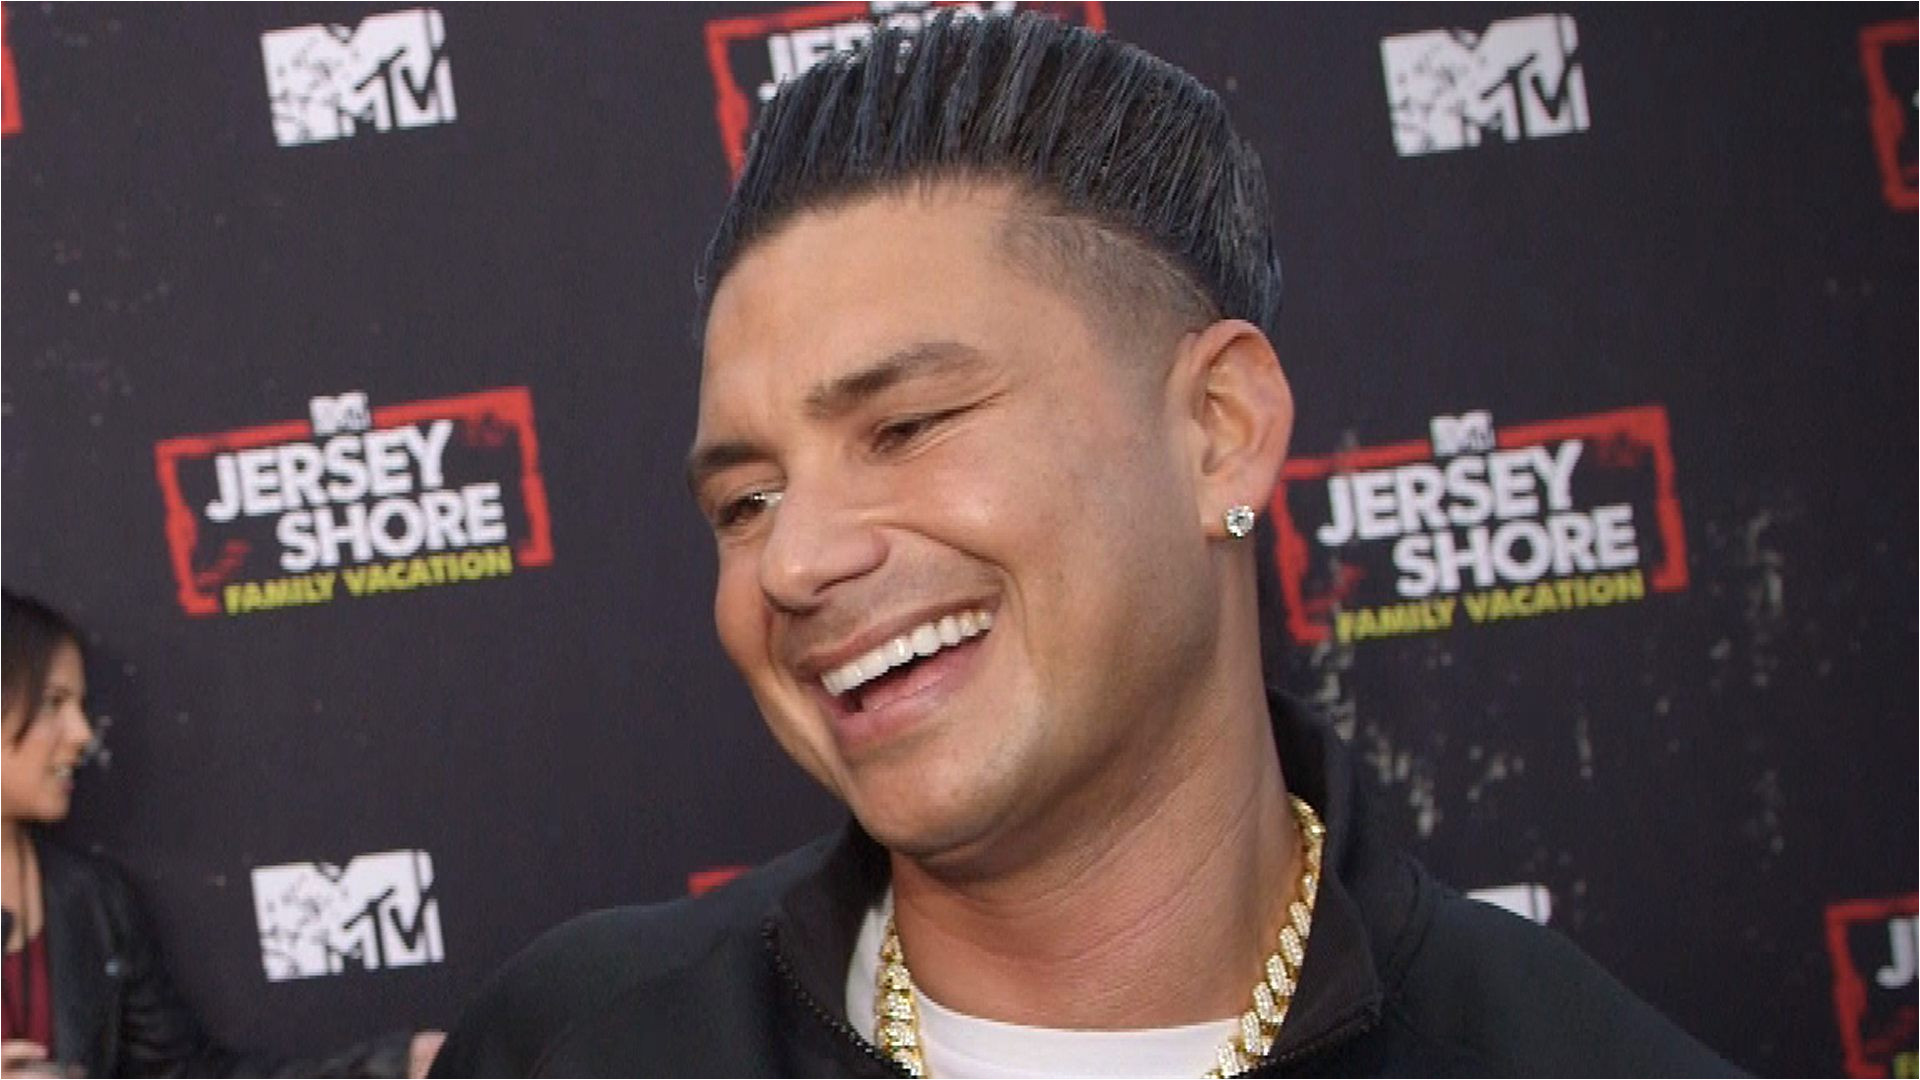 Is Pauly D Married It Sure Looks That Way in Jersey Shore Family Vacation Teaser